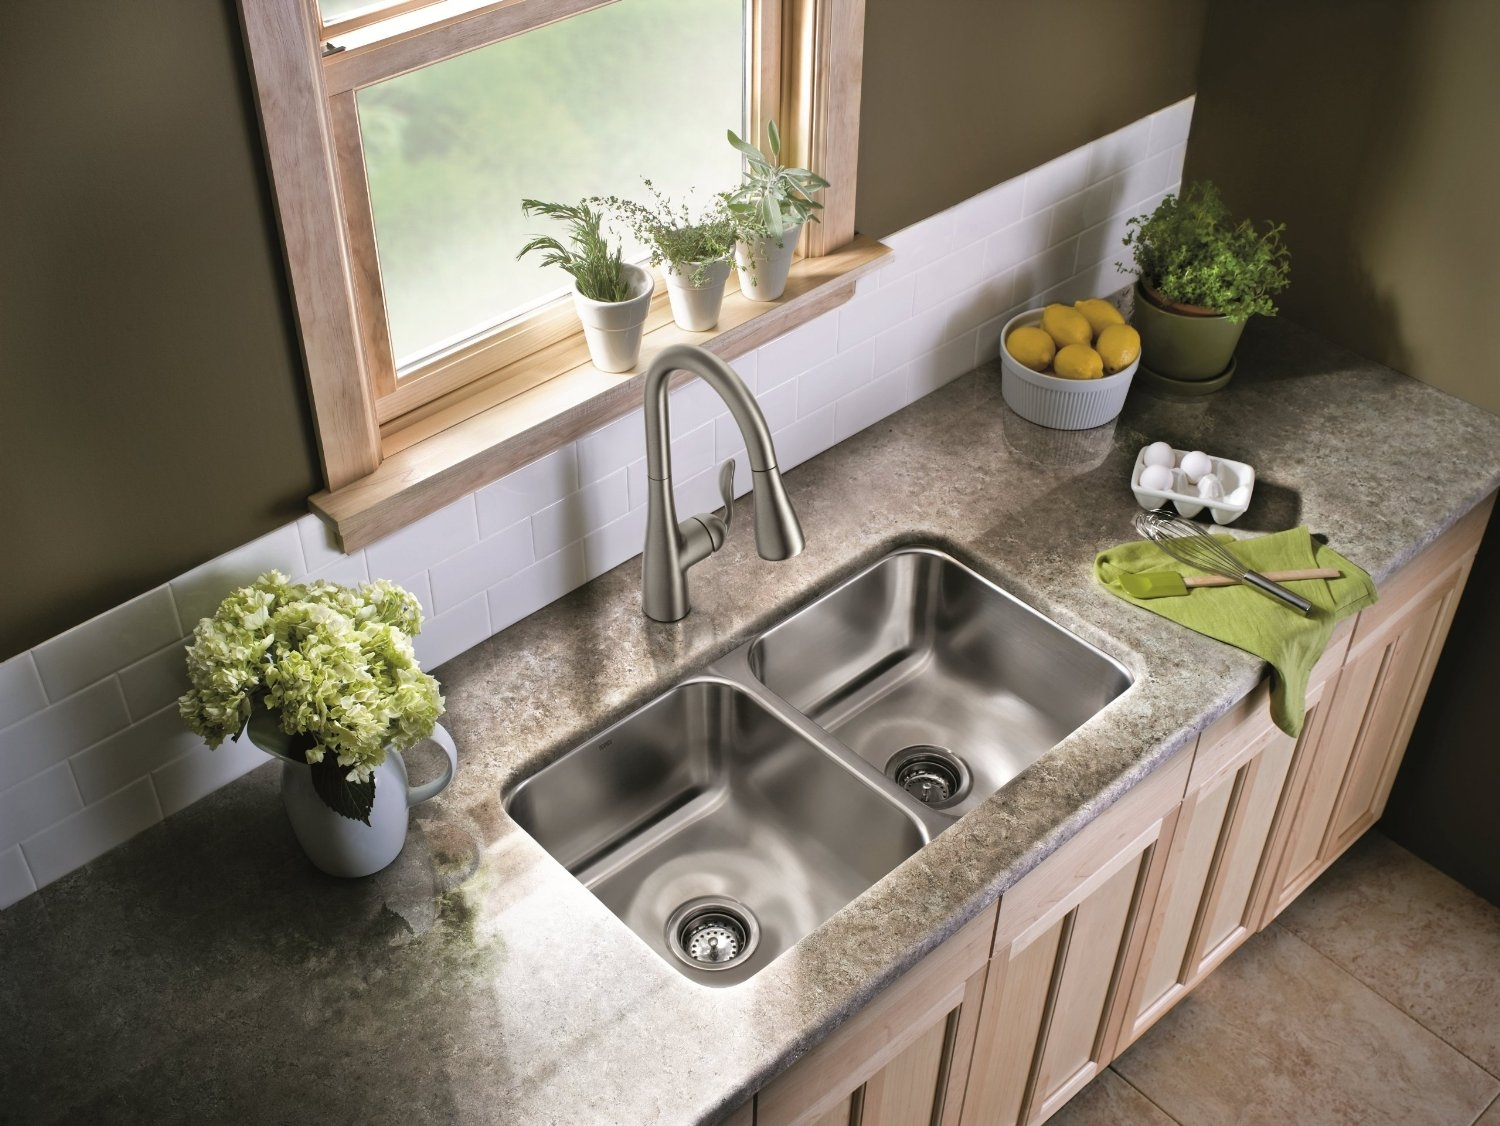 Ideas, best kitchen faucets for granite countertops best kitchen faucets for granite countertops best kitchen faucets 2017 chosen customer ratings 1500 x 1126  .